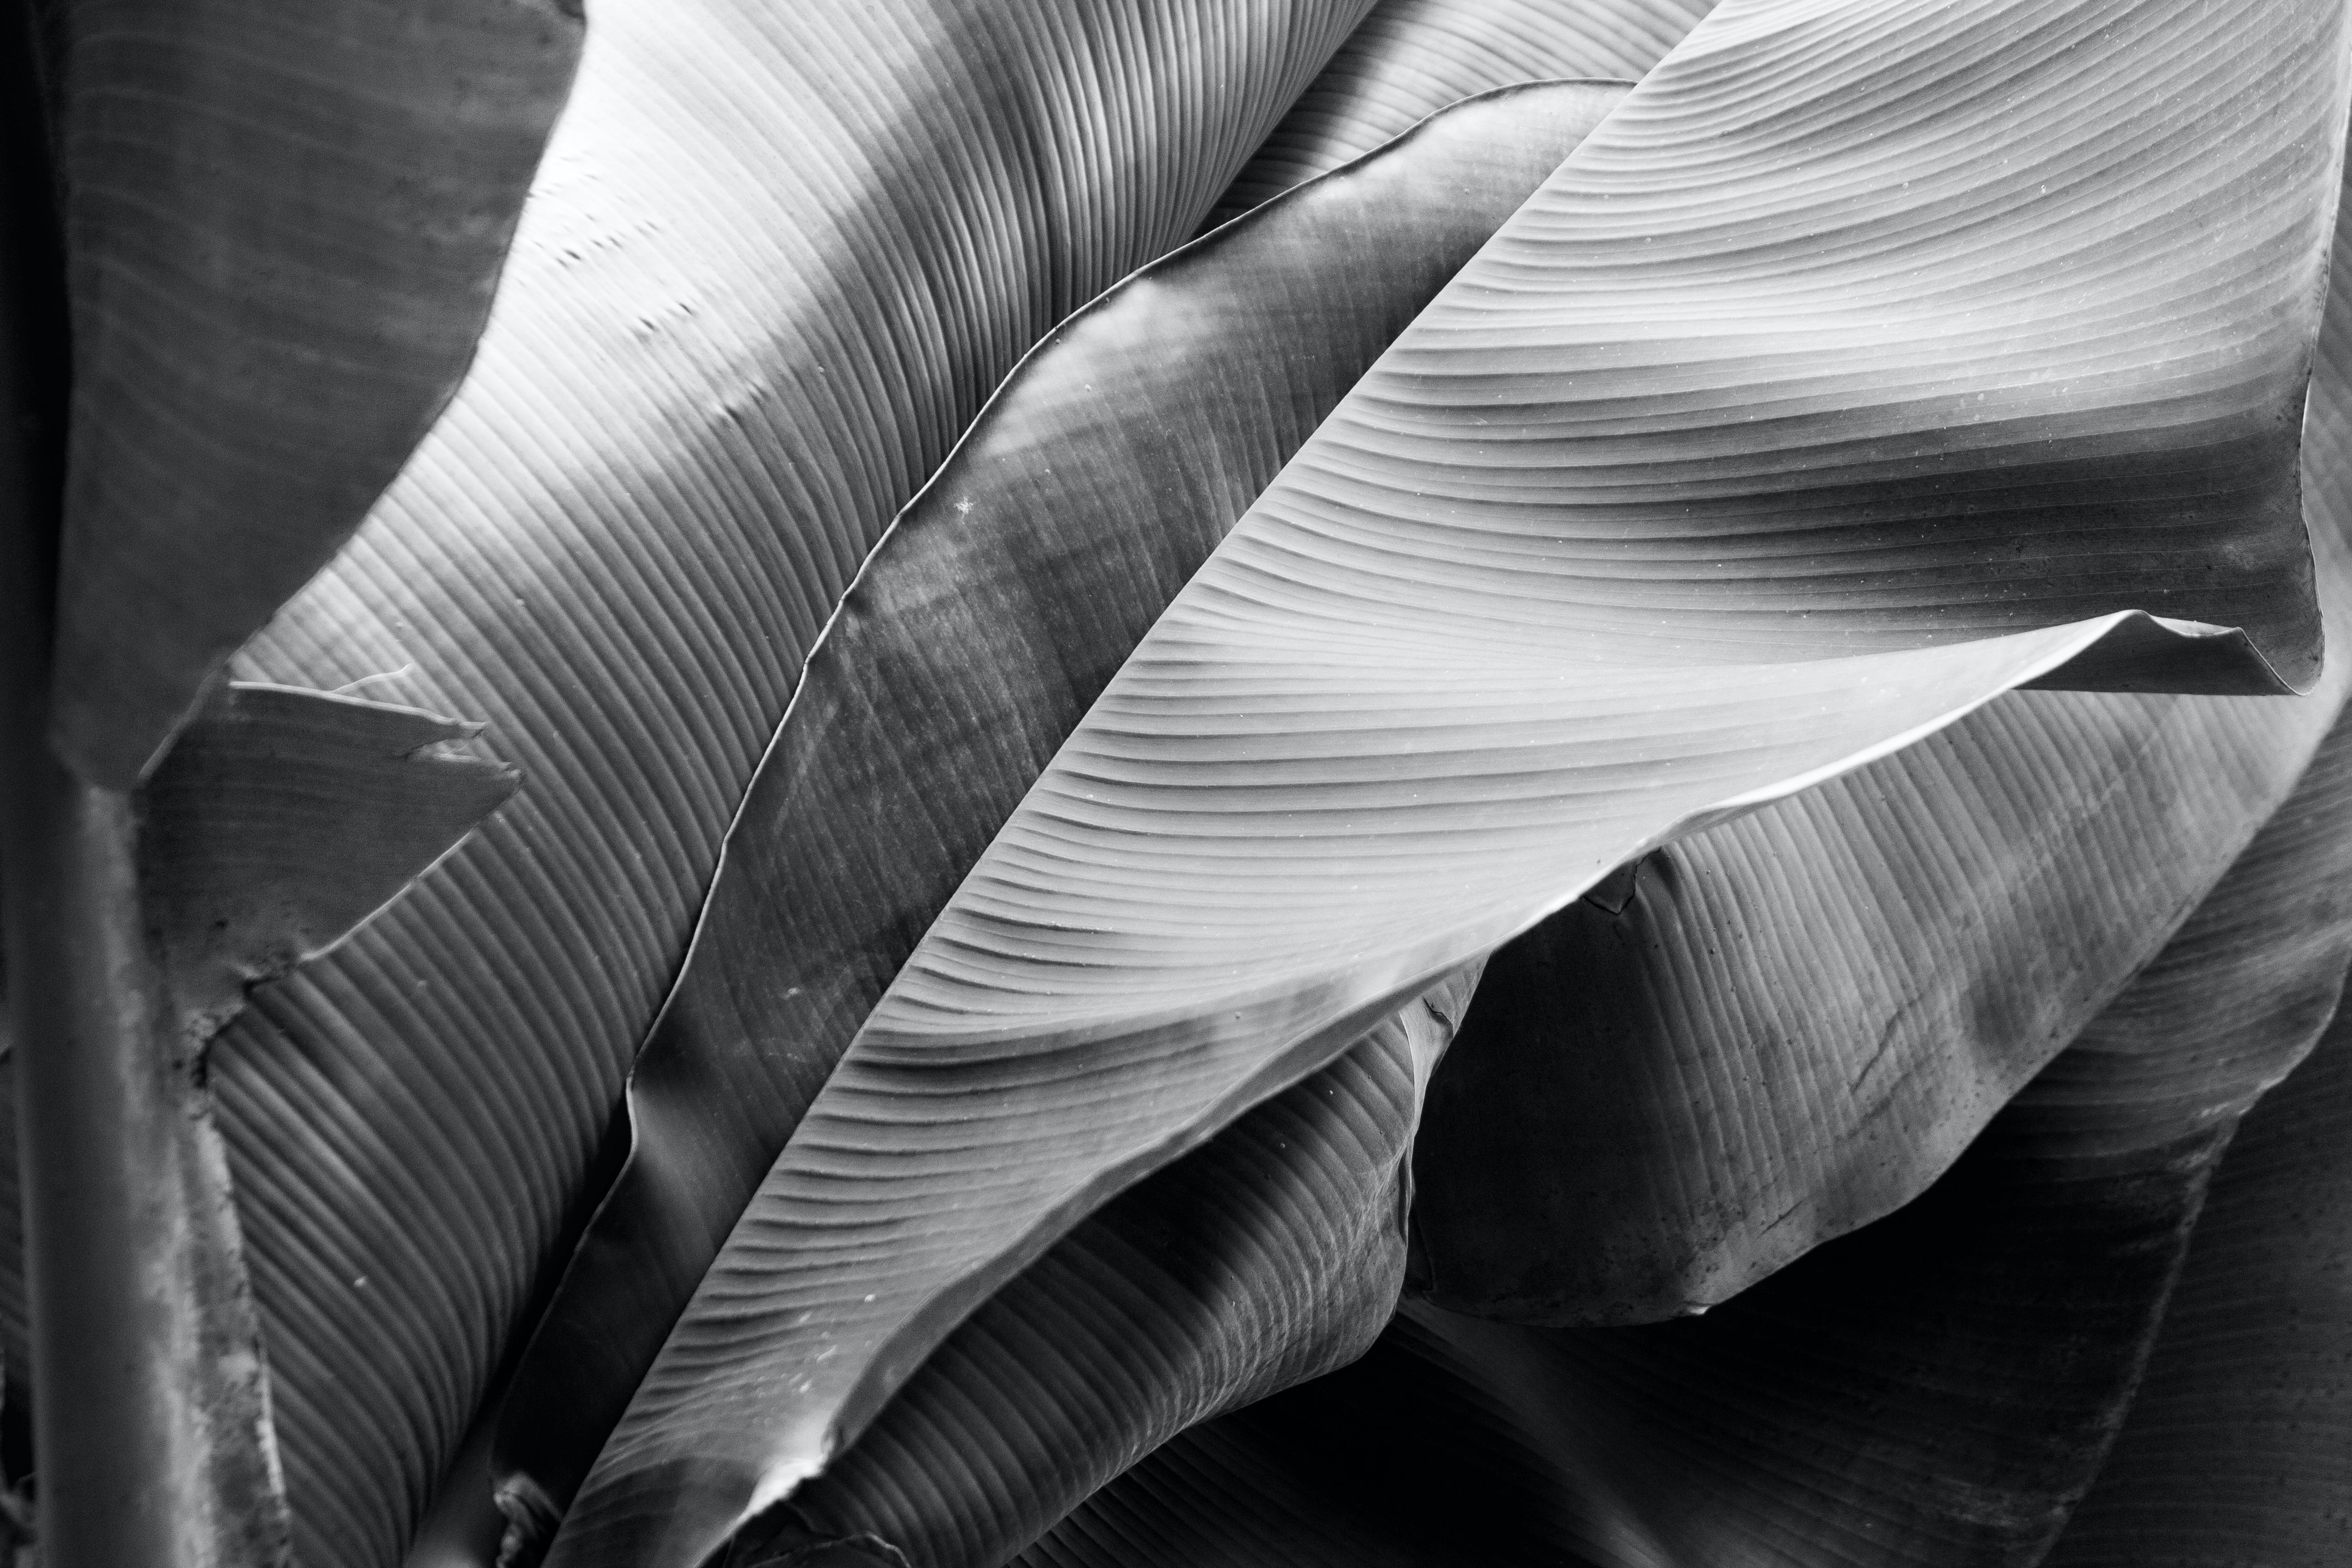 Grayscale Photo of Banana Leaf